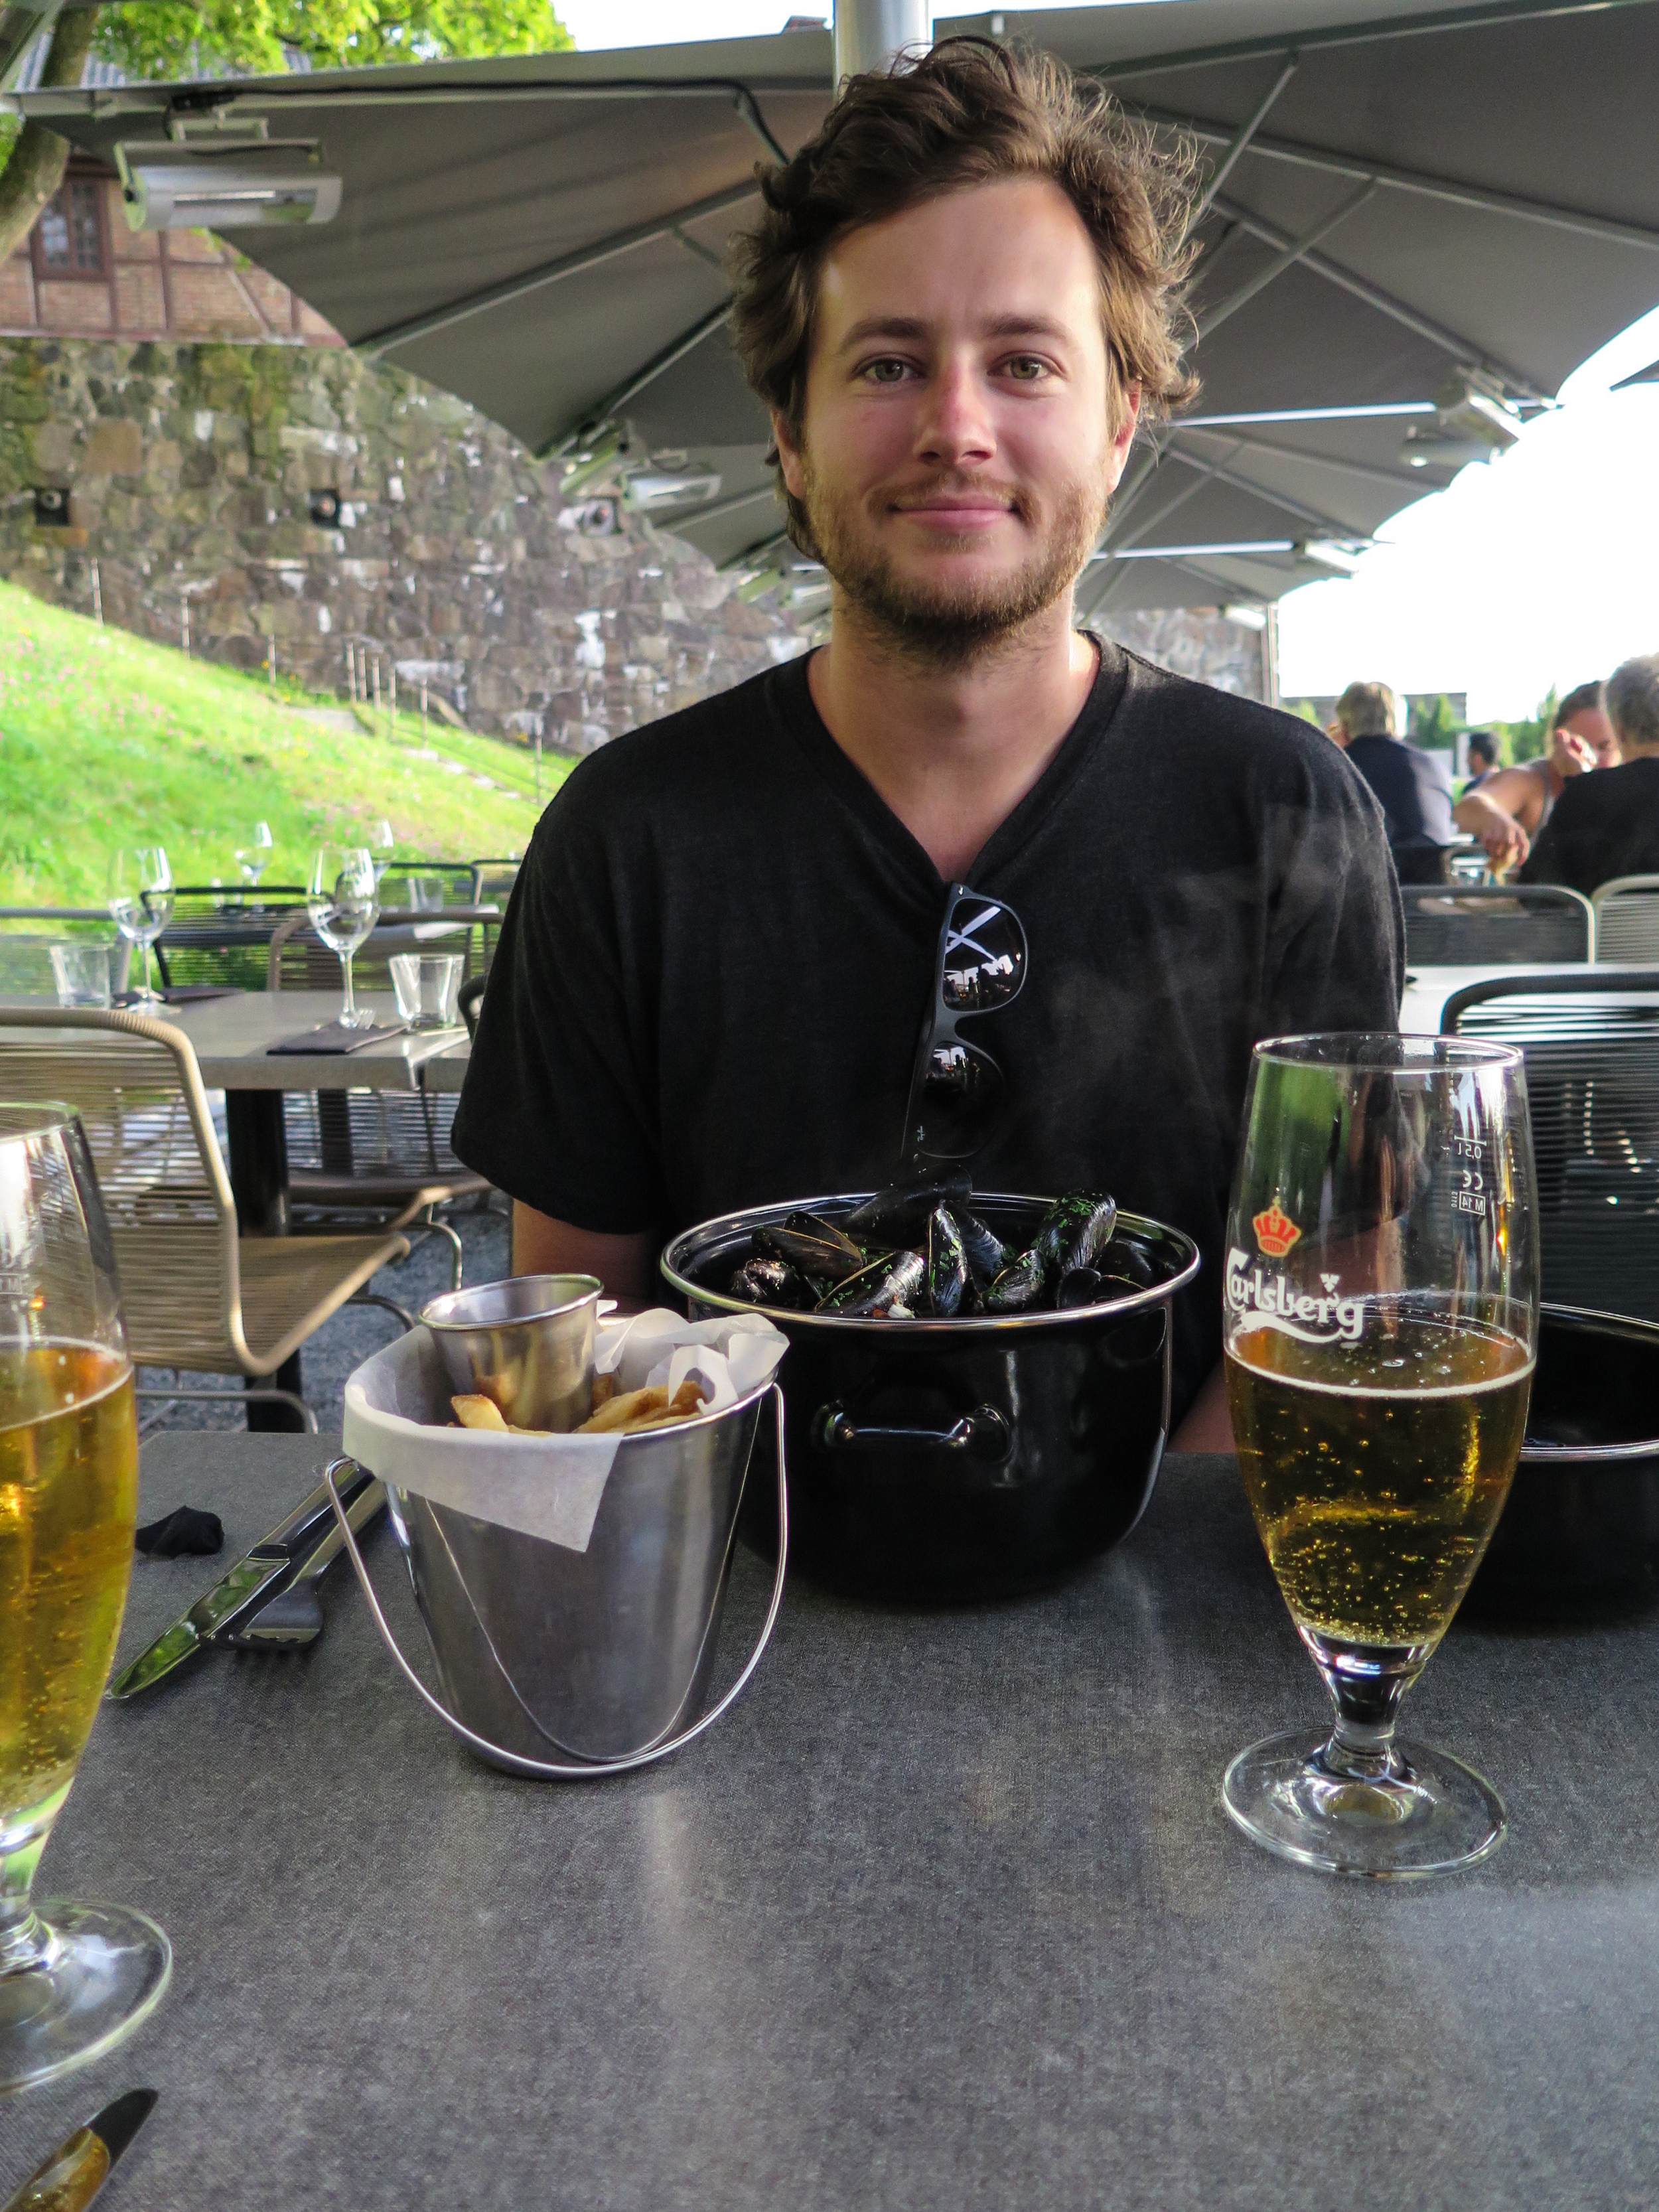 Our first meal in Norway. Mussels and beer.